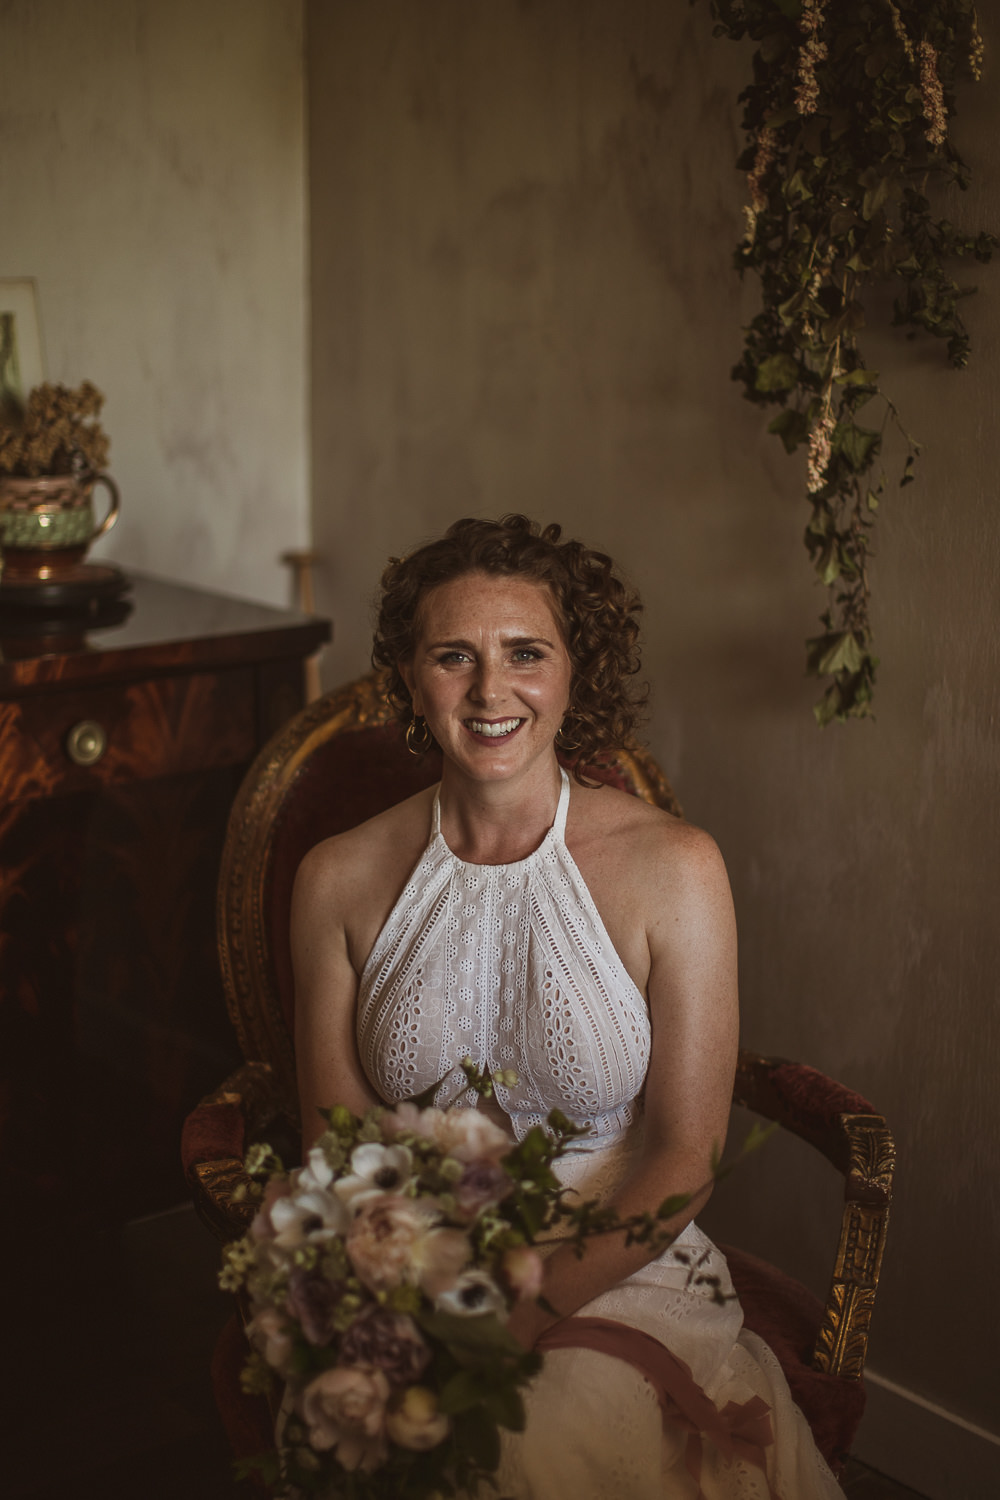 Bride Bridal Hair Make Up Escape To The Chateau Wedding The Springles